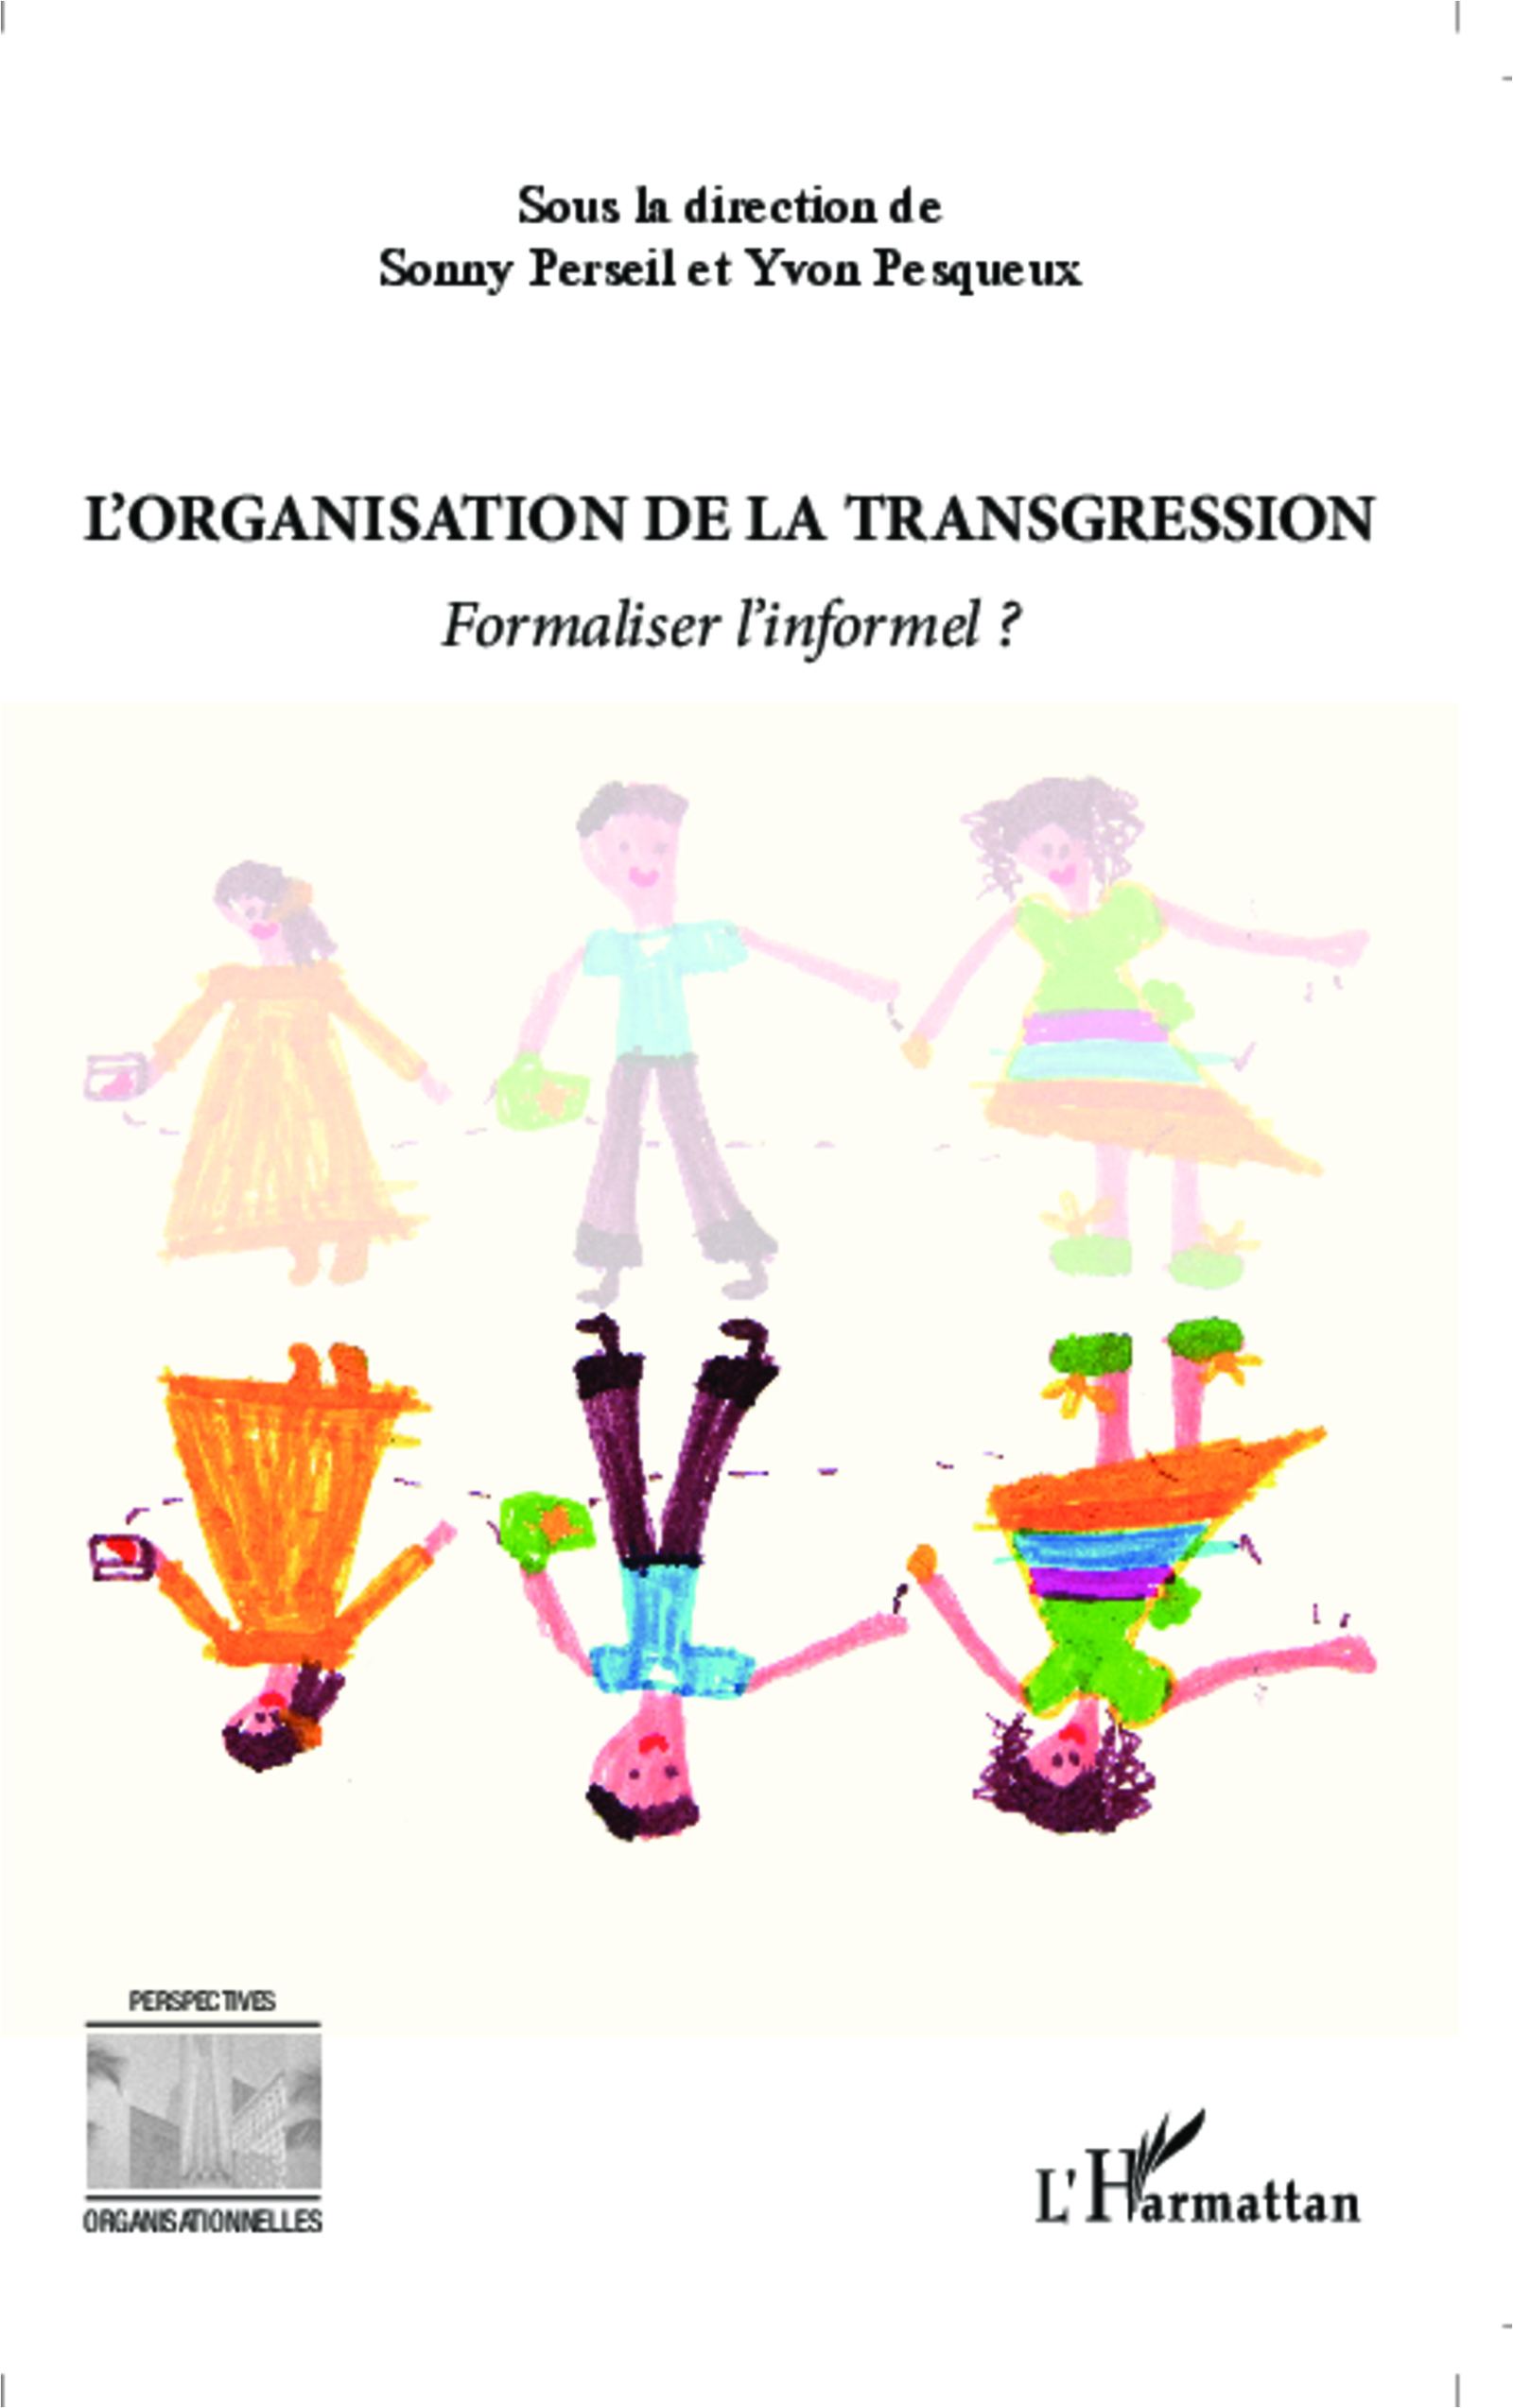 L'organisation de la transgression